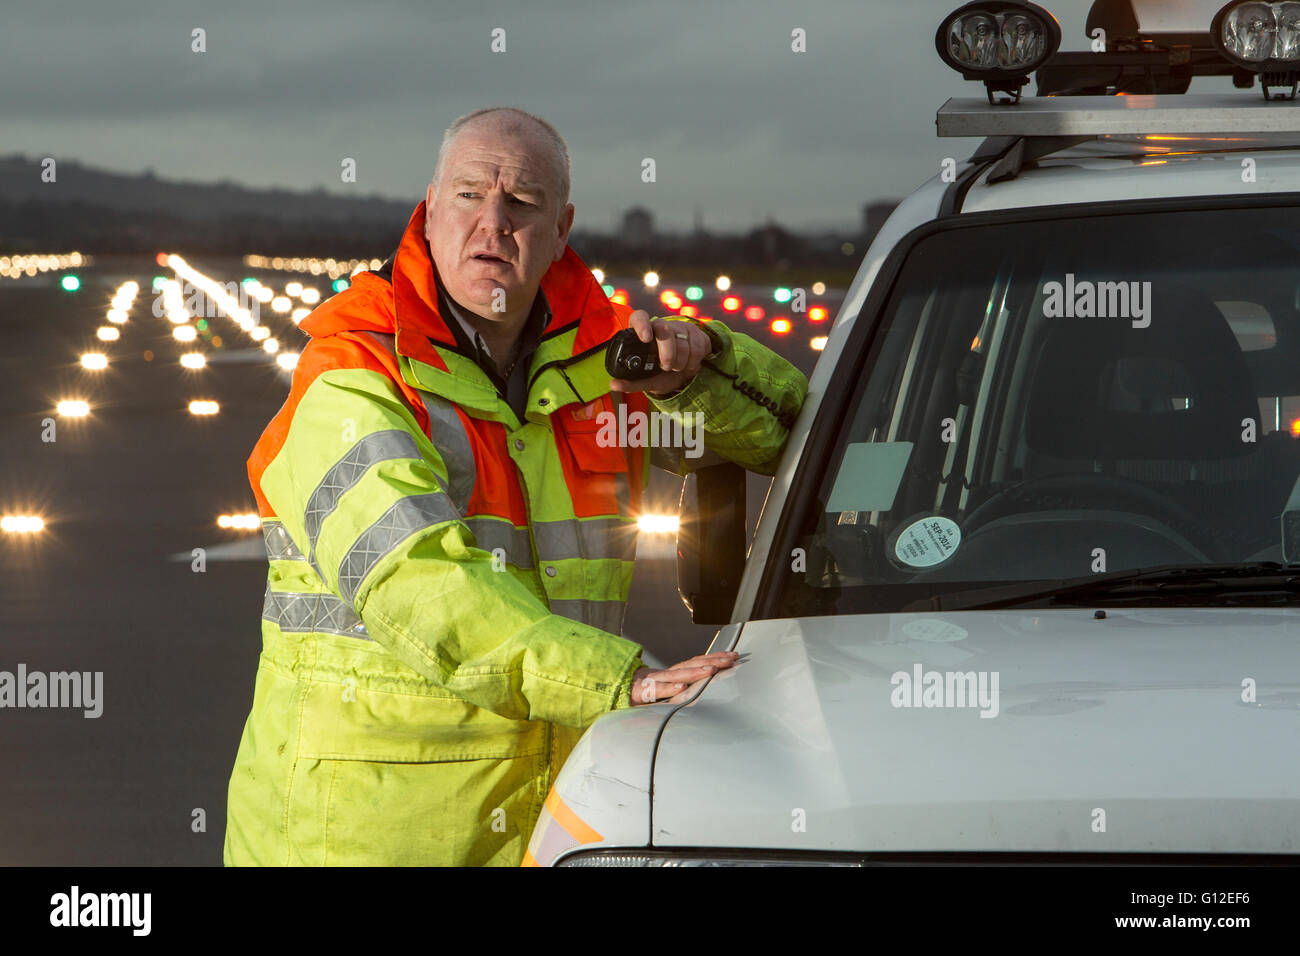 Ground Crew on runway at Glasgow Airport with landing lights in background - Stock Image